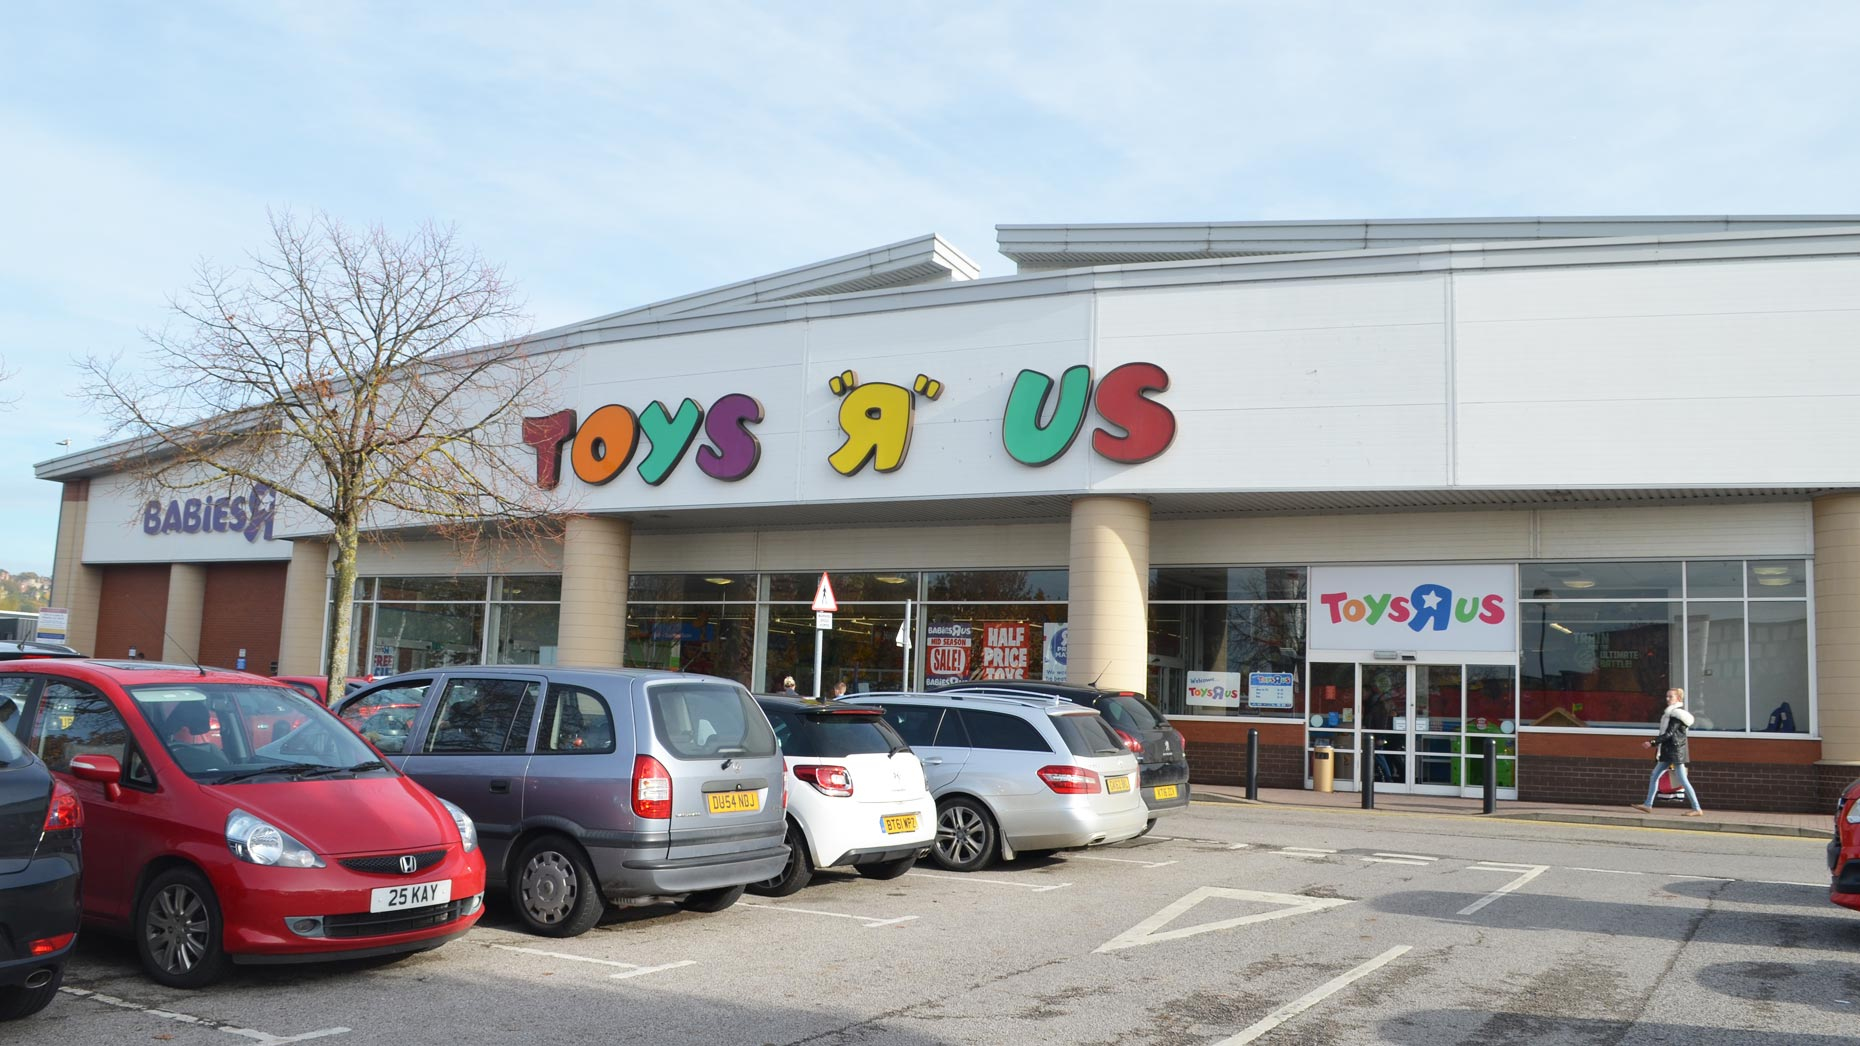 Toys R Us confirms store closures as MPs scrutinise failing chains